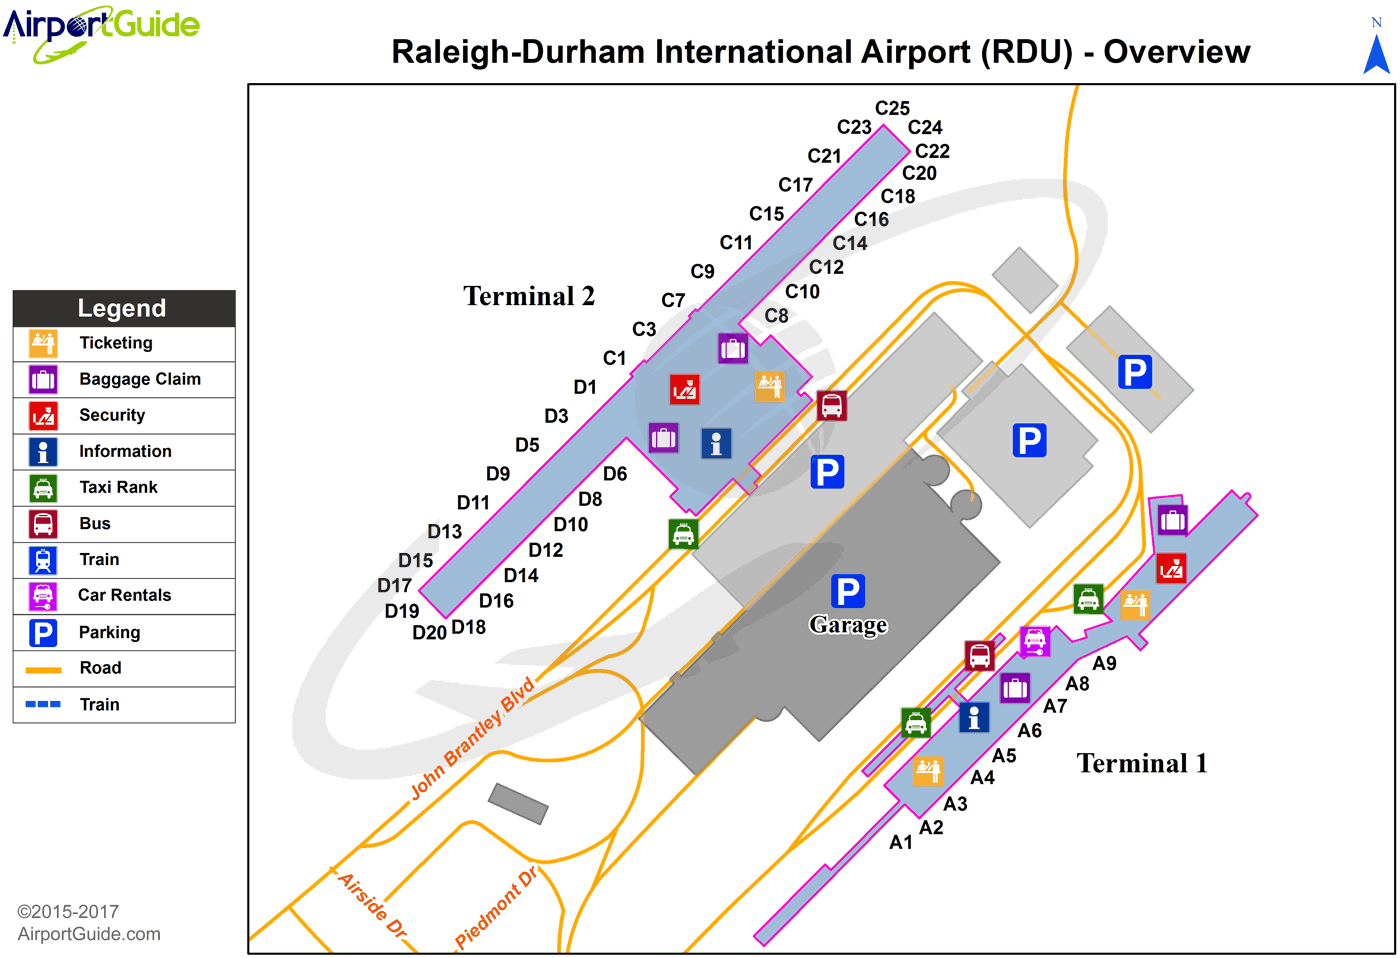 raleigh durham airport map Raleigh Durham Raleigh Durham International Rdu Airport raleigh durham airport map